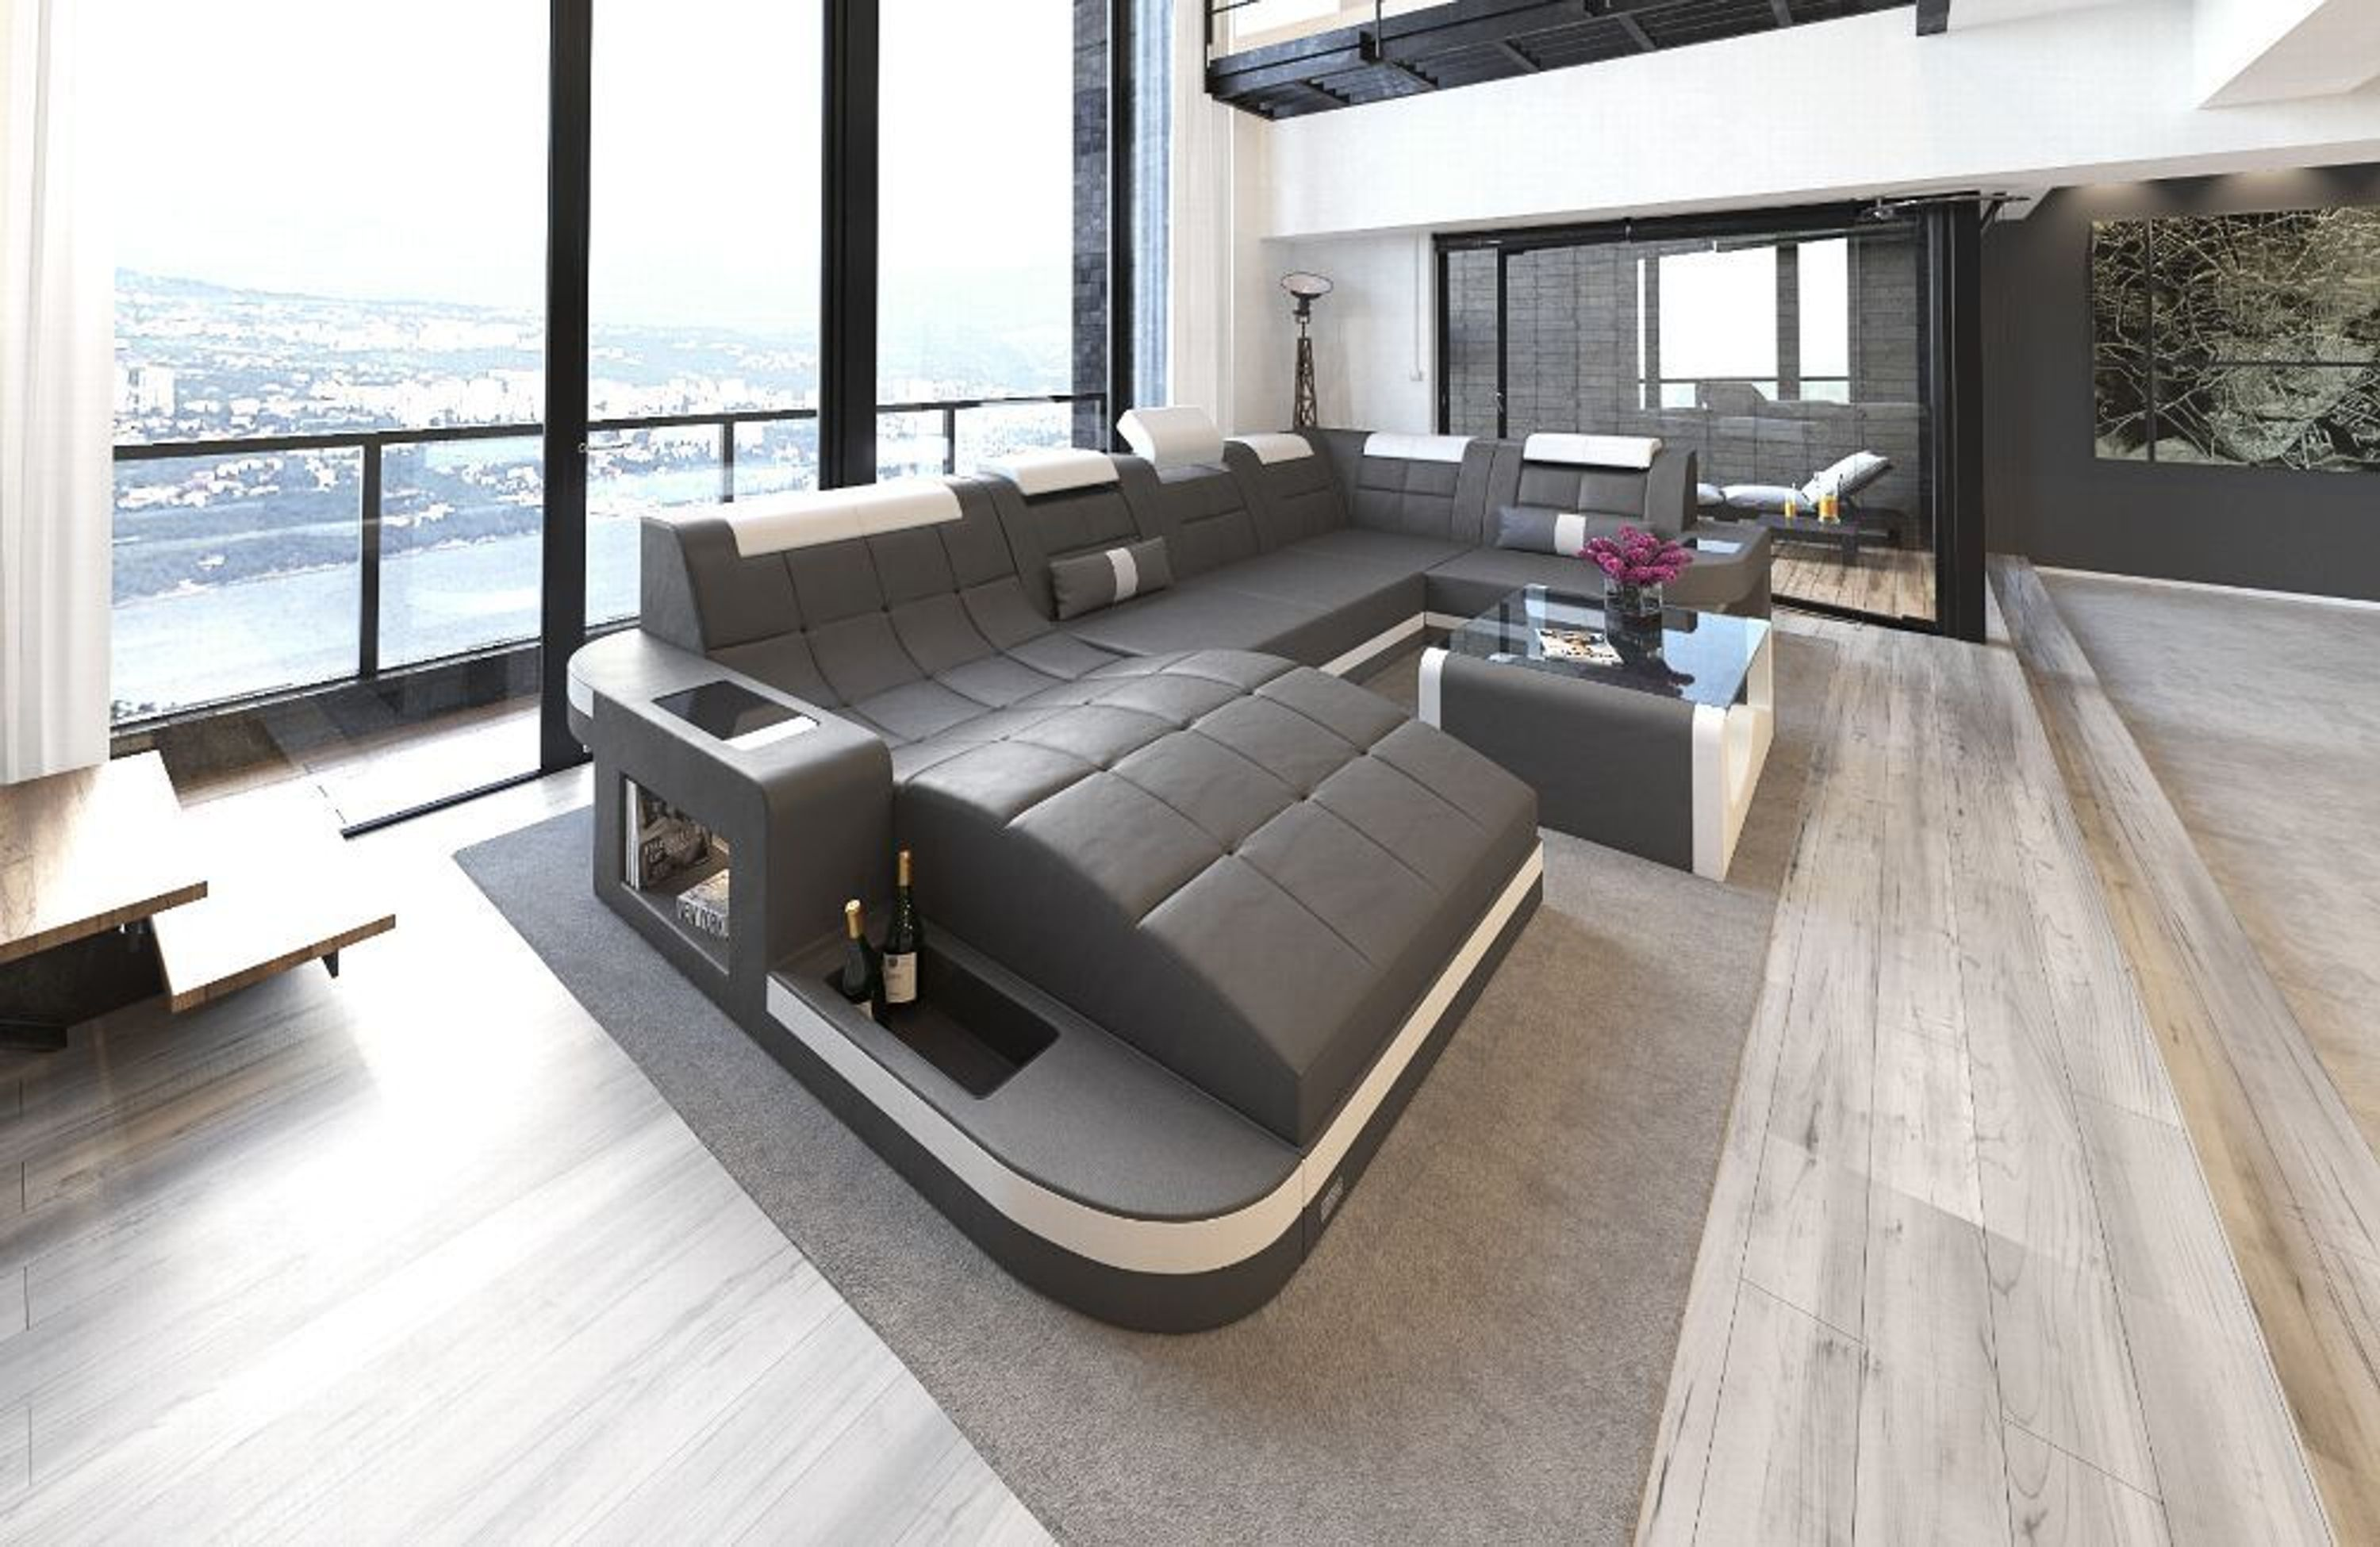 wohnlandschaft wave u form luxus couch garnitur mit led rgb beleuchtung ecksofa kaufen bei. Black Bedroom Furniture Sets. Home Design Ideas